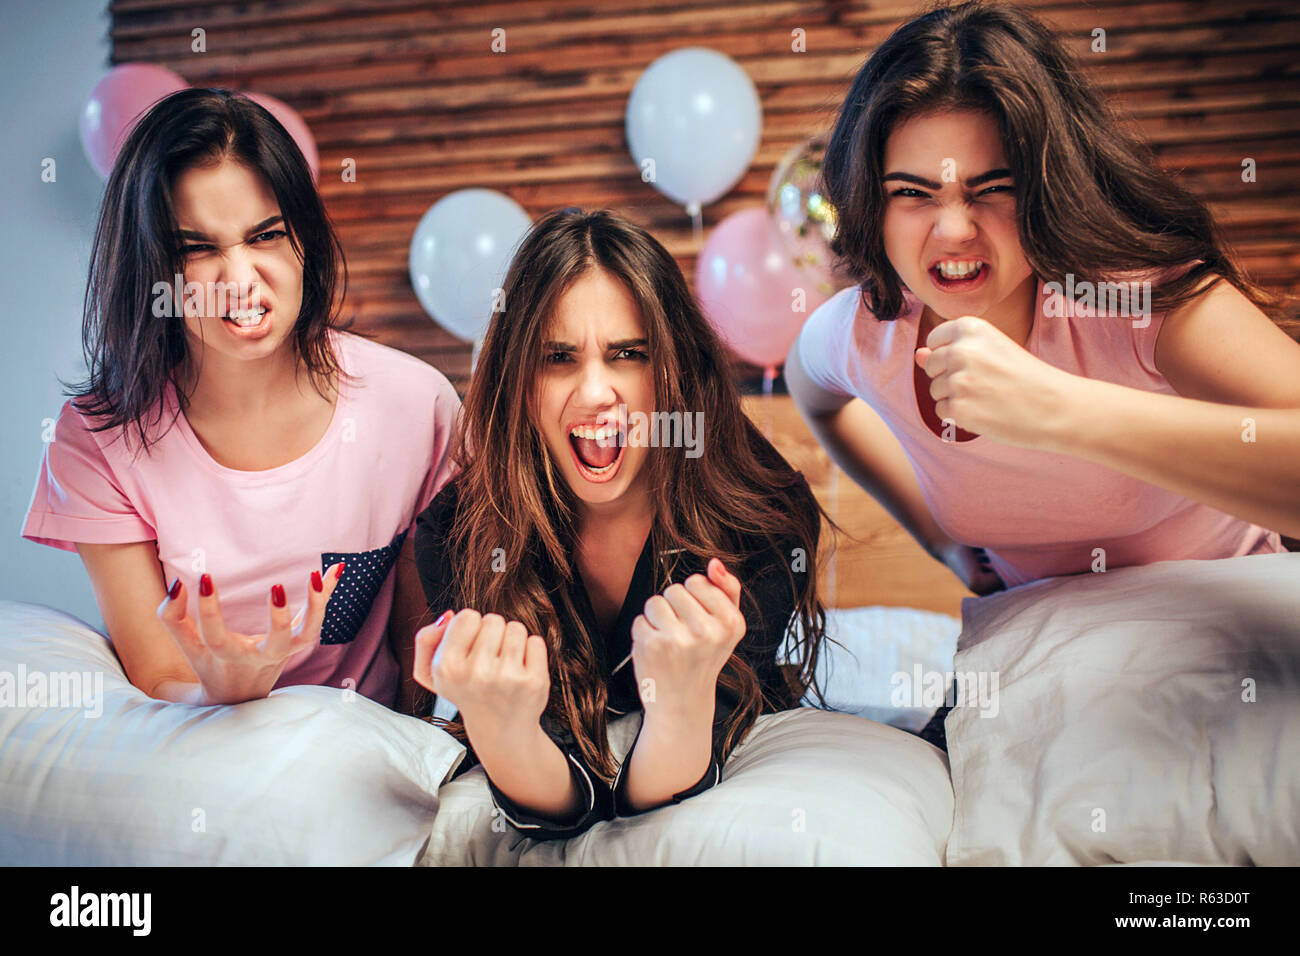 Emotional young women look on camera. They sit on bed with angry faces. Girls are very emotional Stock Photo